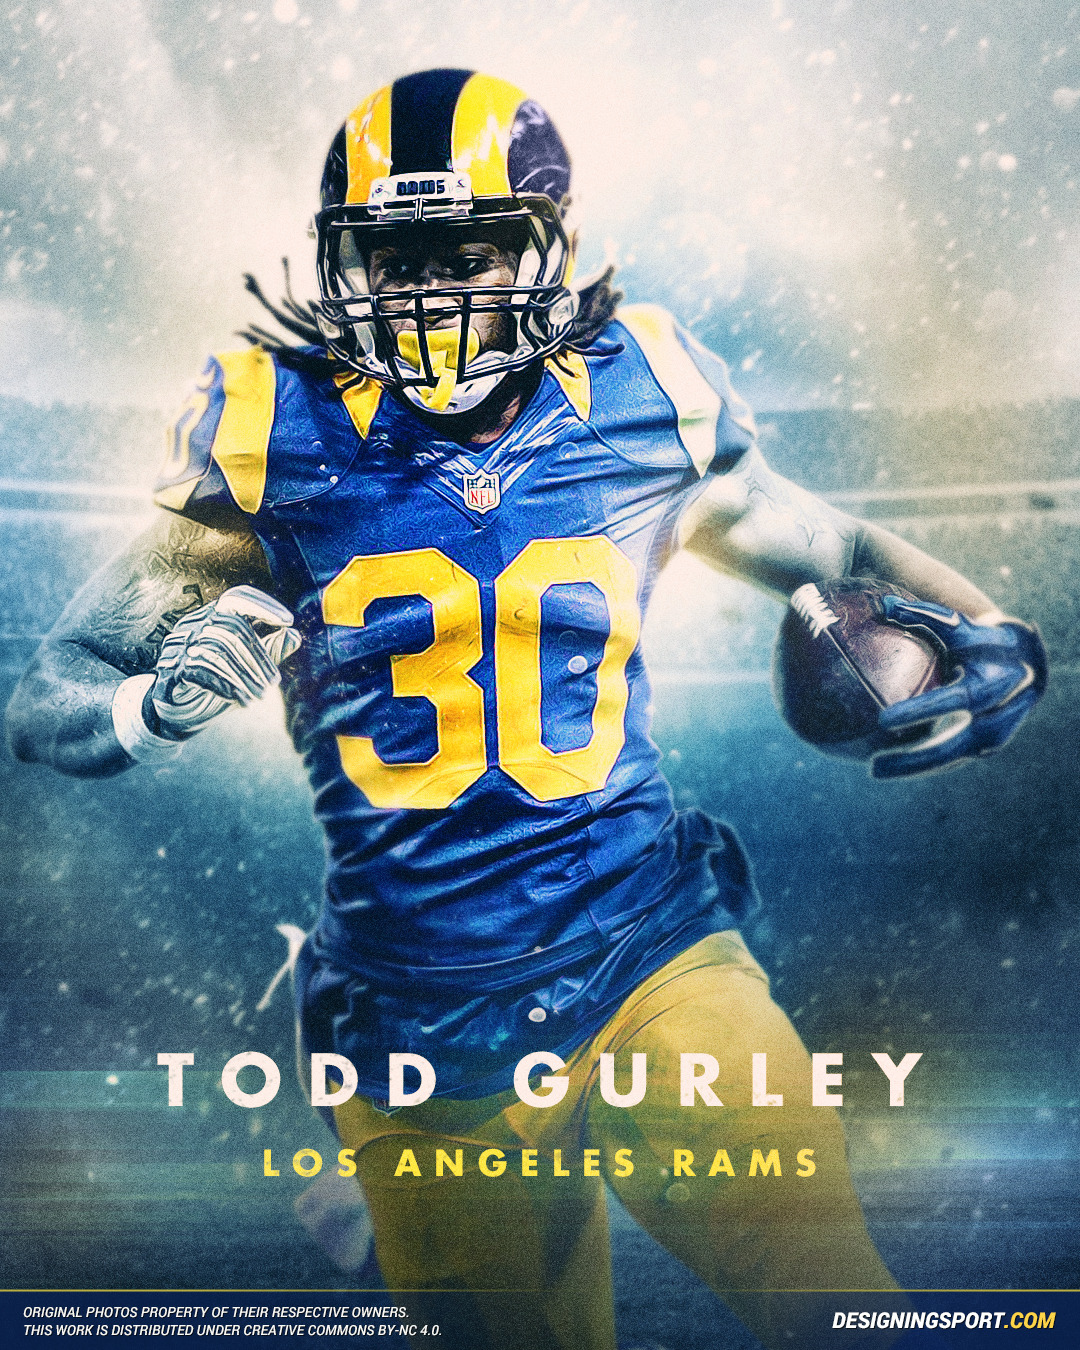 Todd Gurley Los Angeles Rams Daring Boy Interactive With Images Fantasy Football Shirt Fantasy Football Champion Todd Gurley